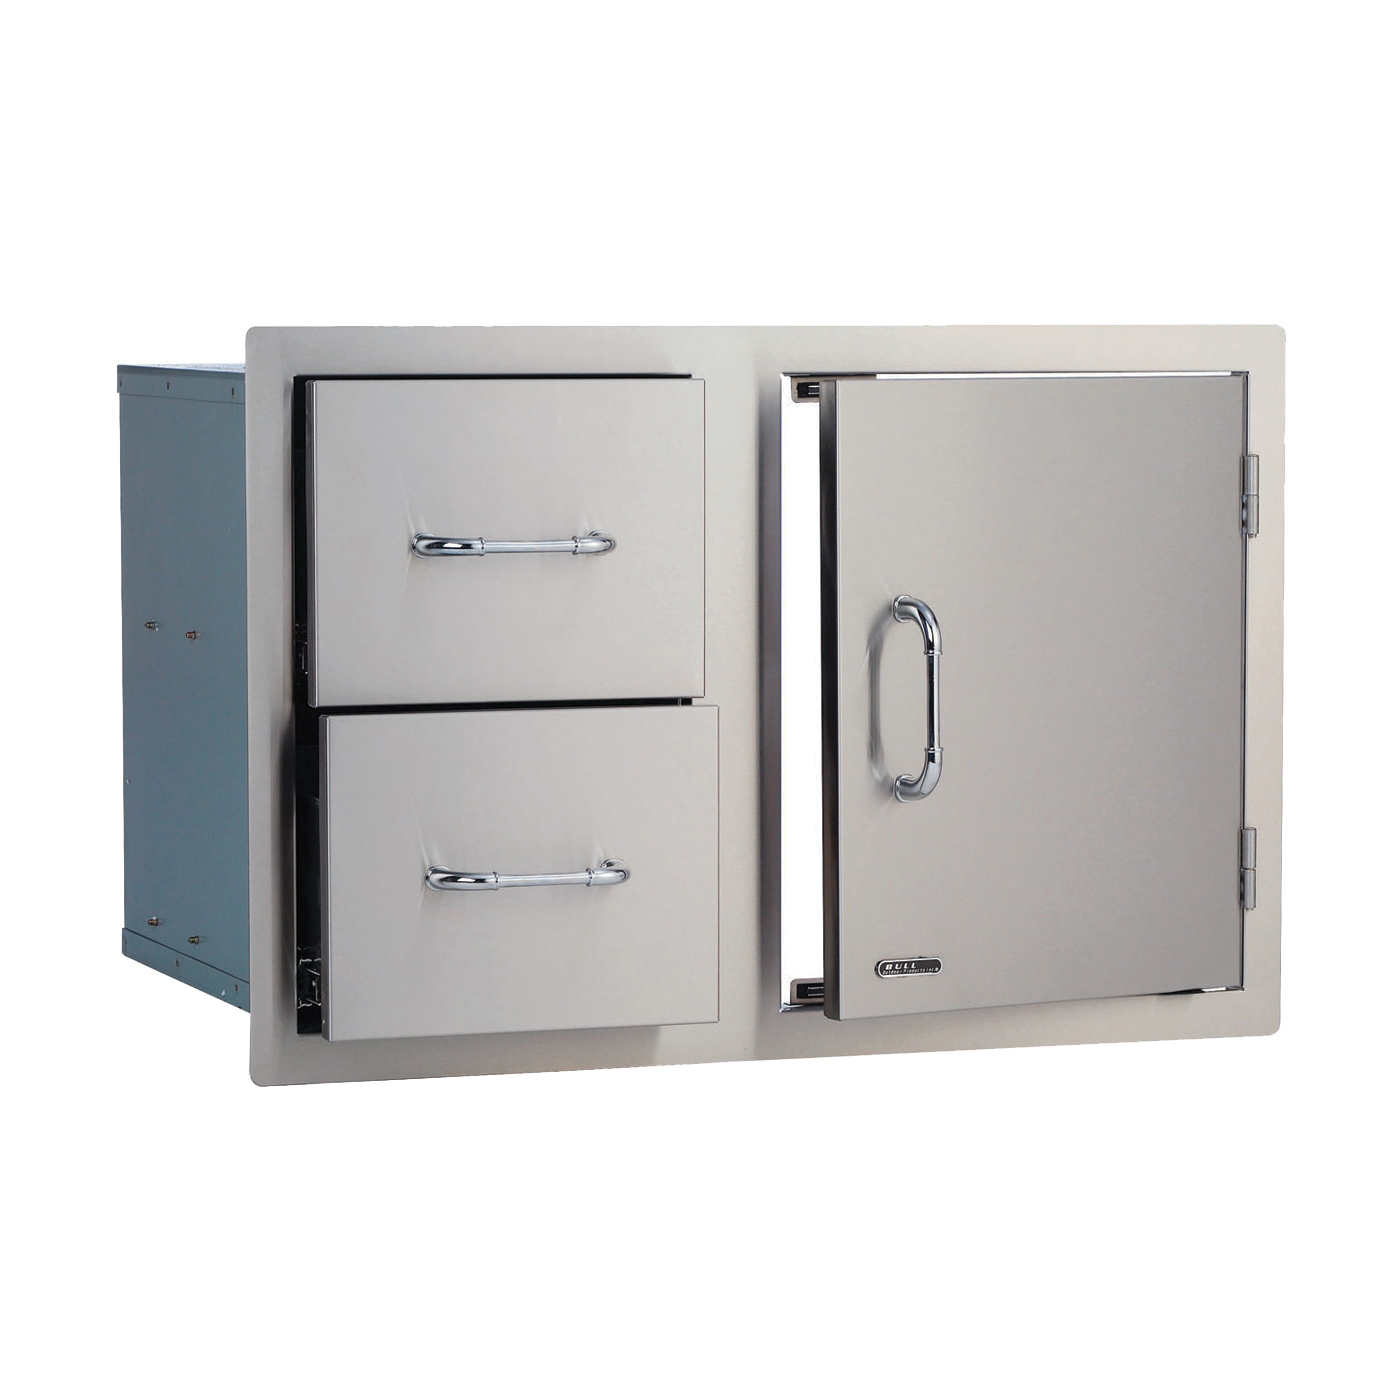 Picture of BULL 25876 Grill Cabinetry, 33 in L, 20-1/2 in W, 22 in H, 2 -Drawer, Stainless Steel, Metallic